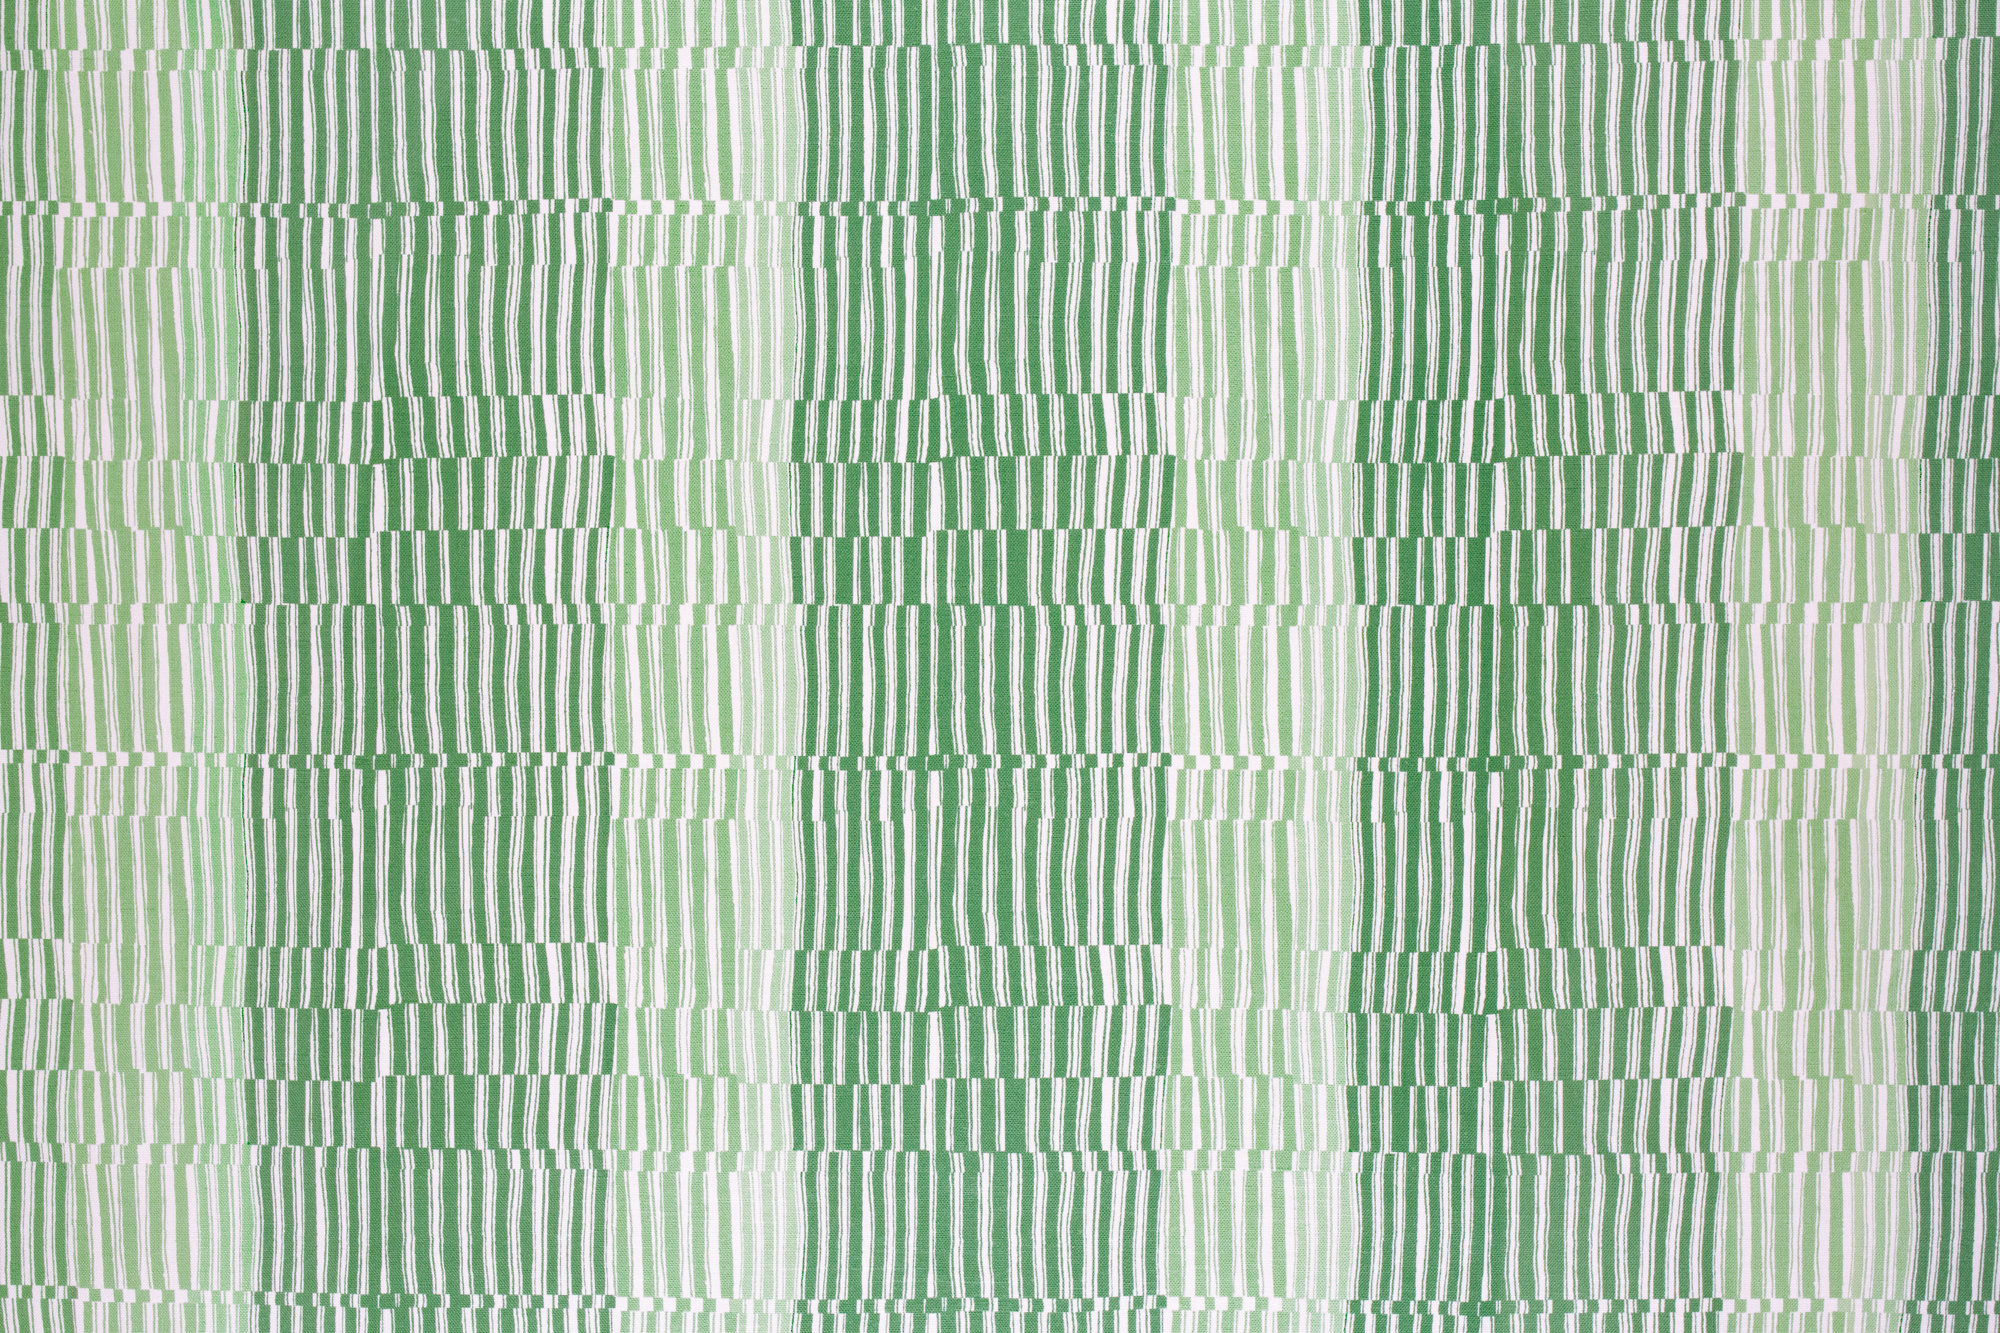 Isobel_Mills_Tattered_Stripe_Jasper_Green.jpg